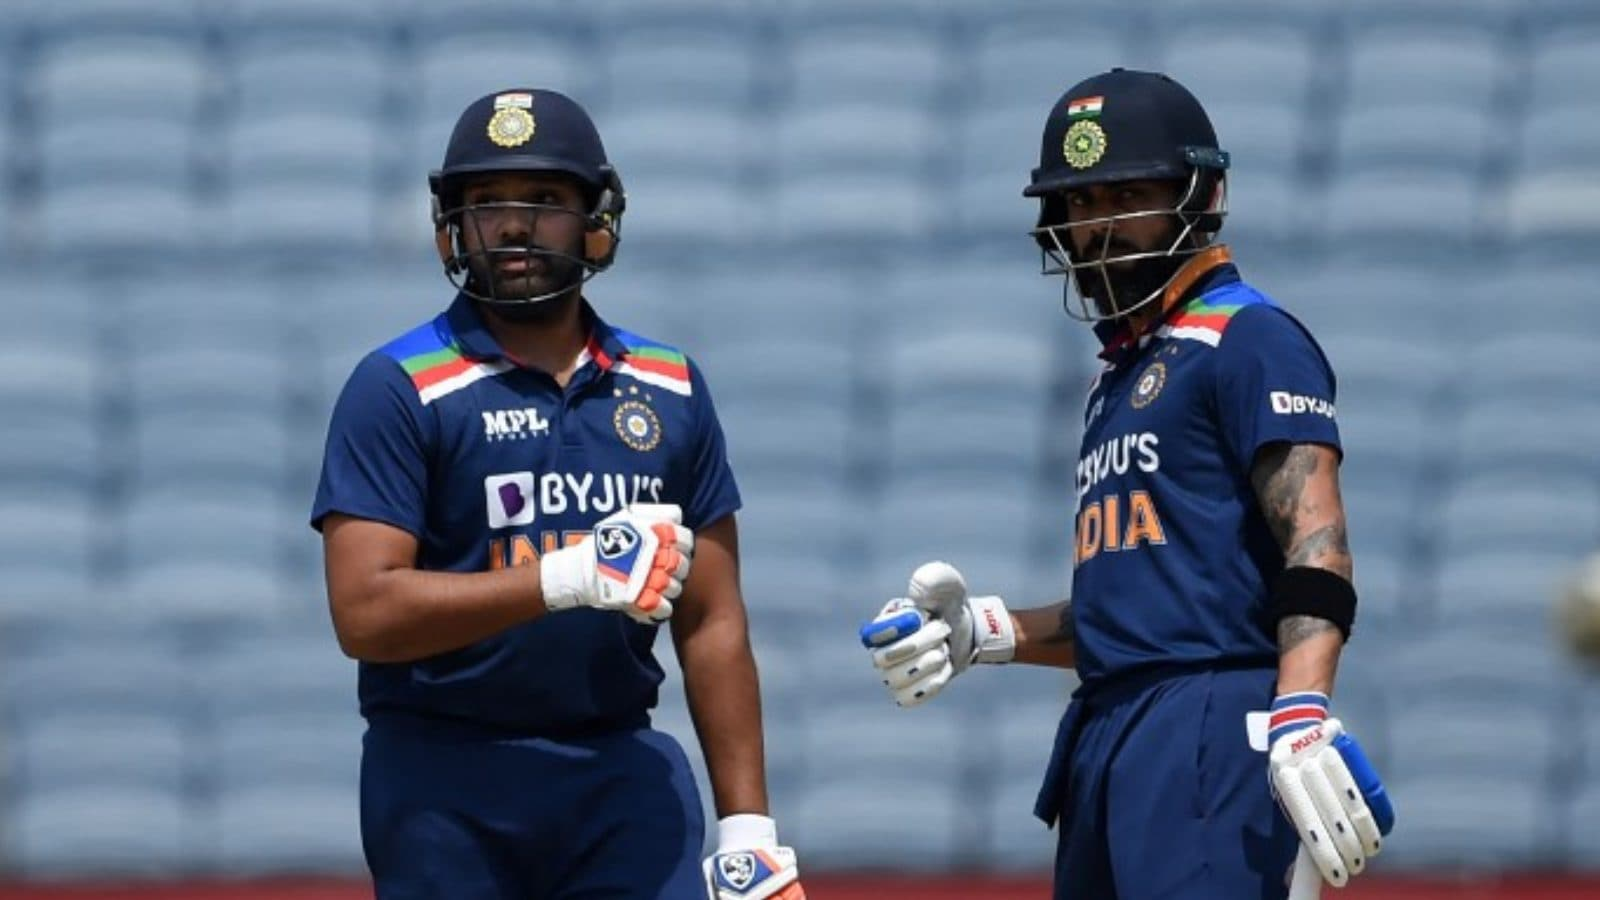 Rohit Sharma to Replace Virat Kohli as India's Limited-Overs Captain After T20 World Cup: Report